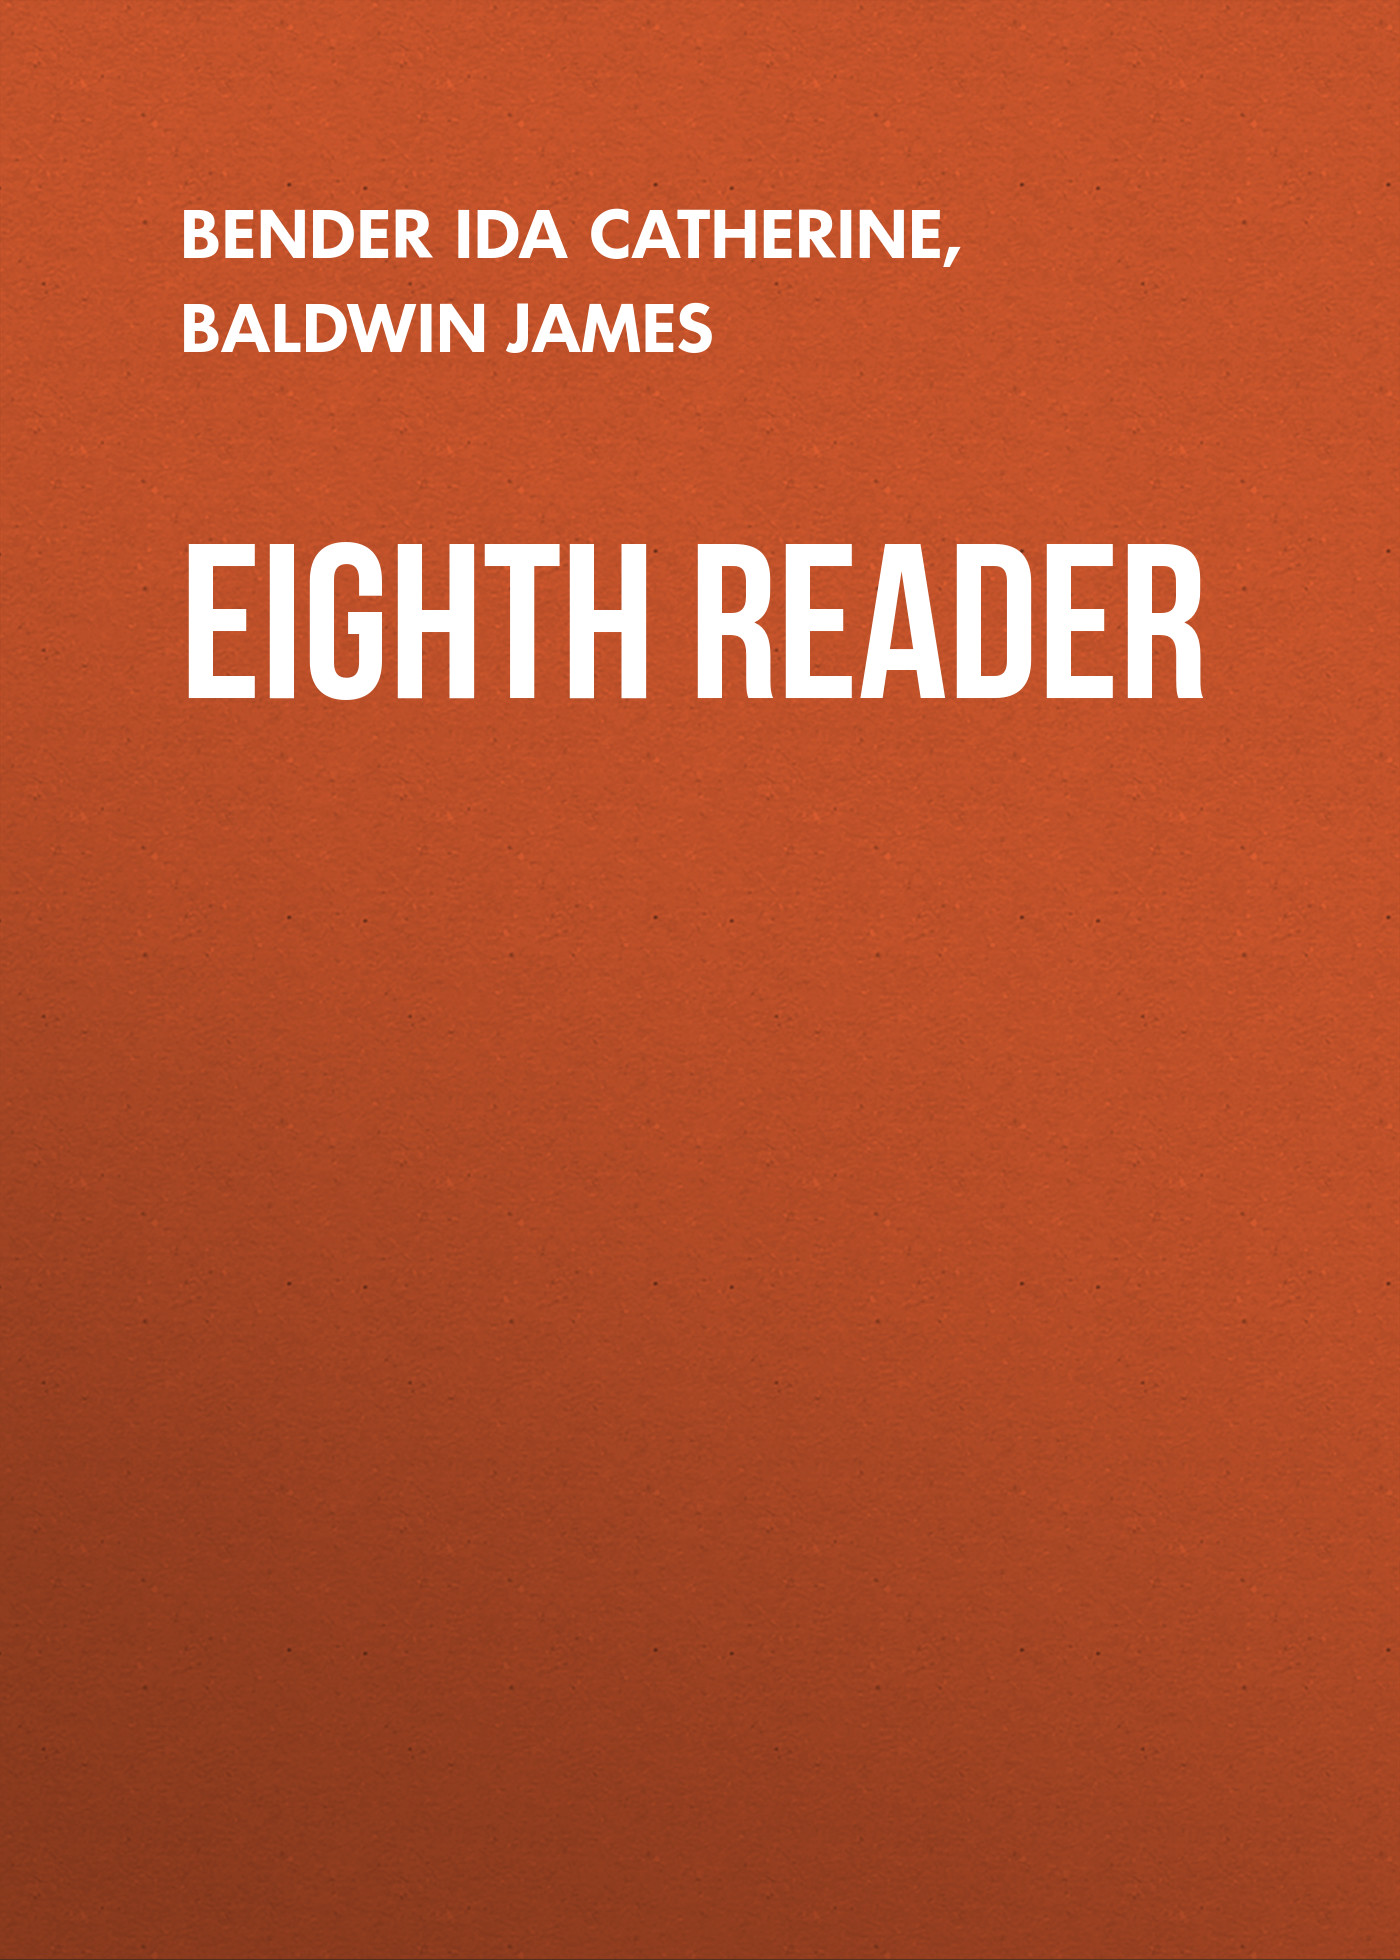 Baldwin James Eighth Reader alec baldwin